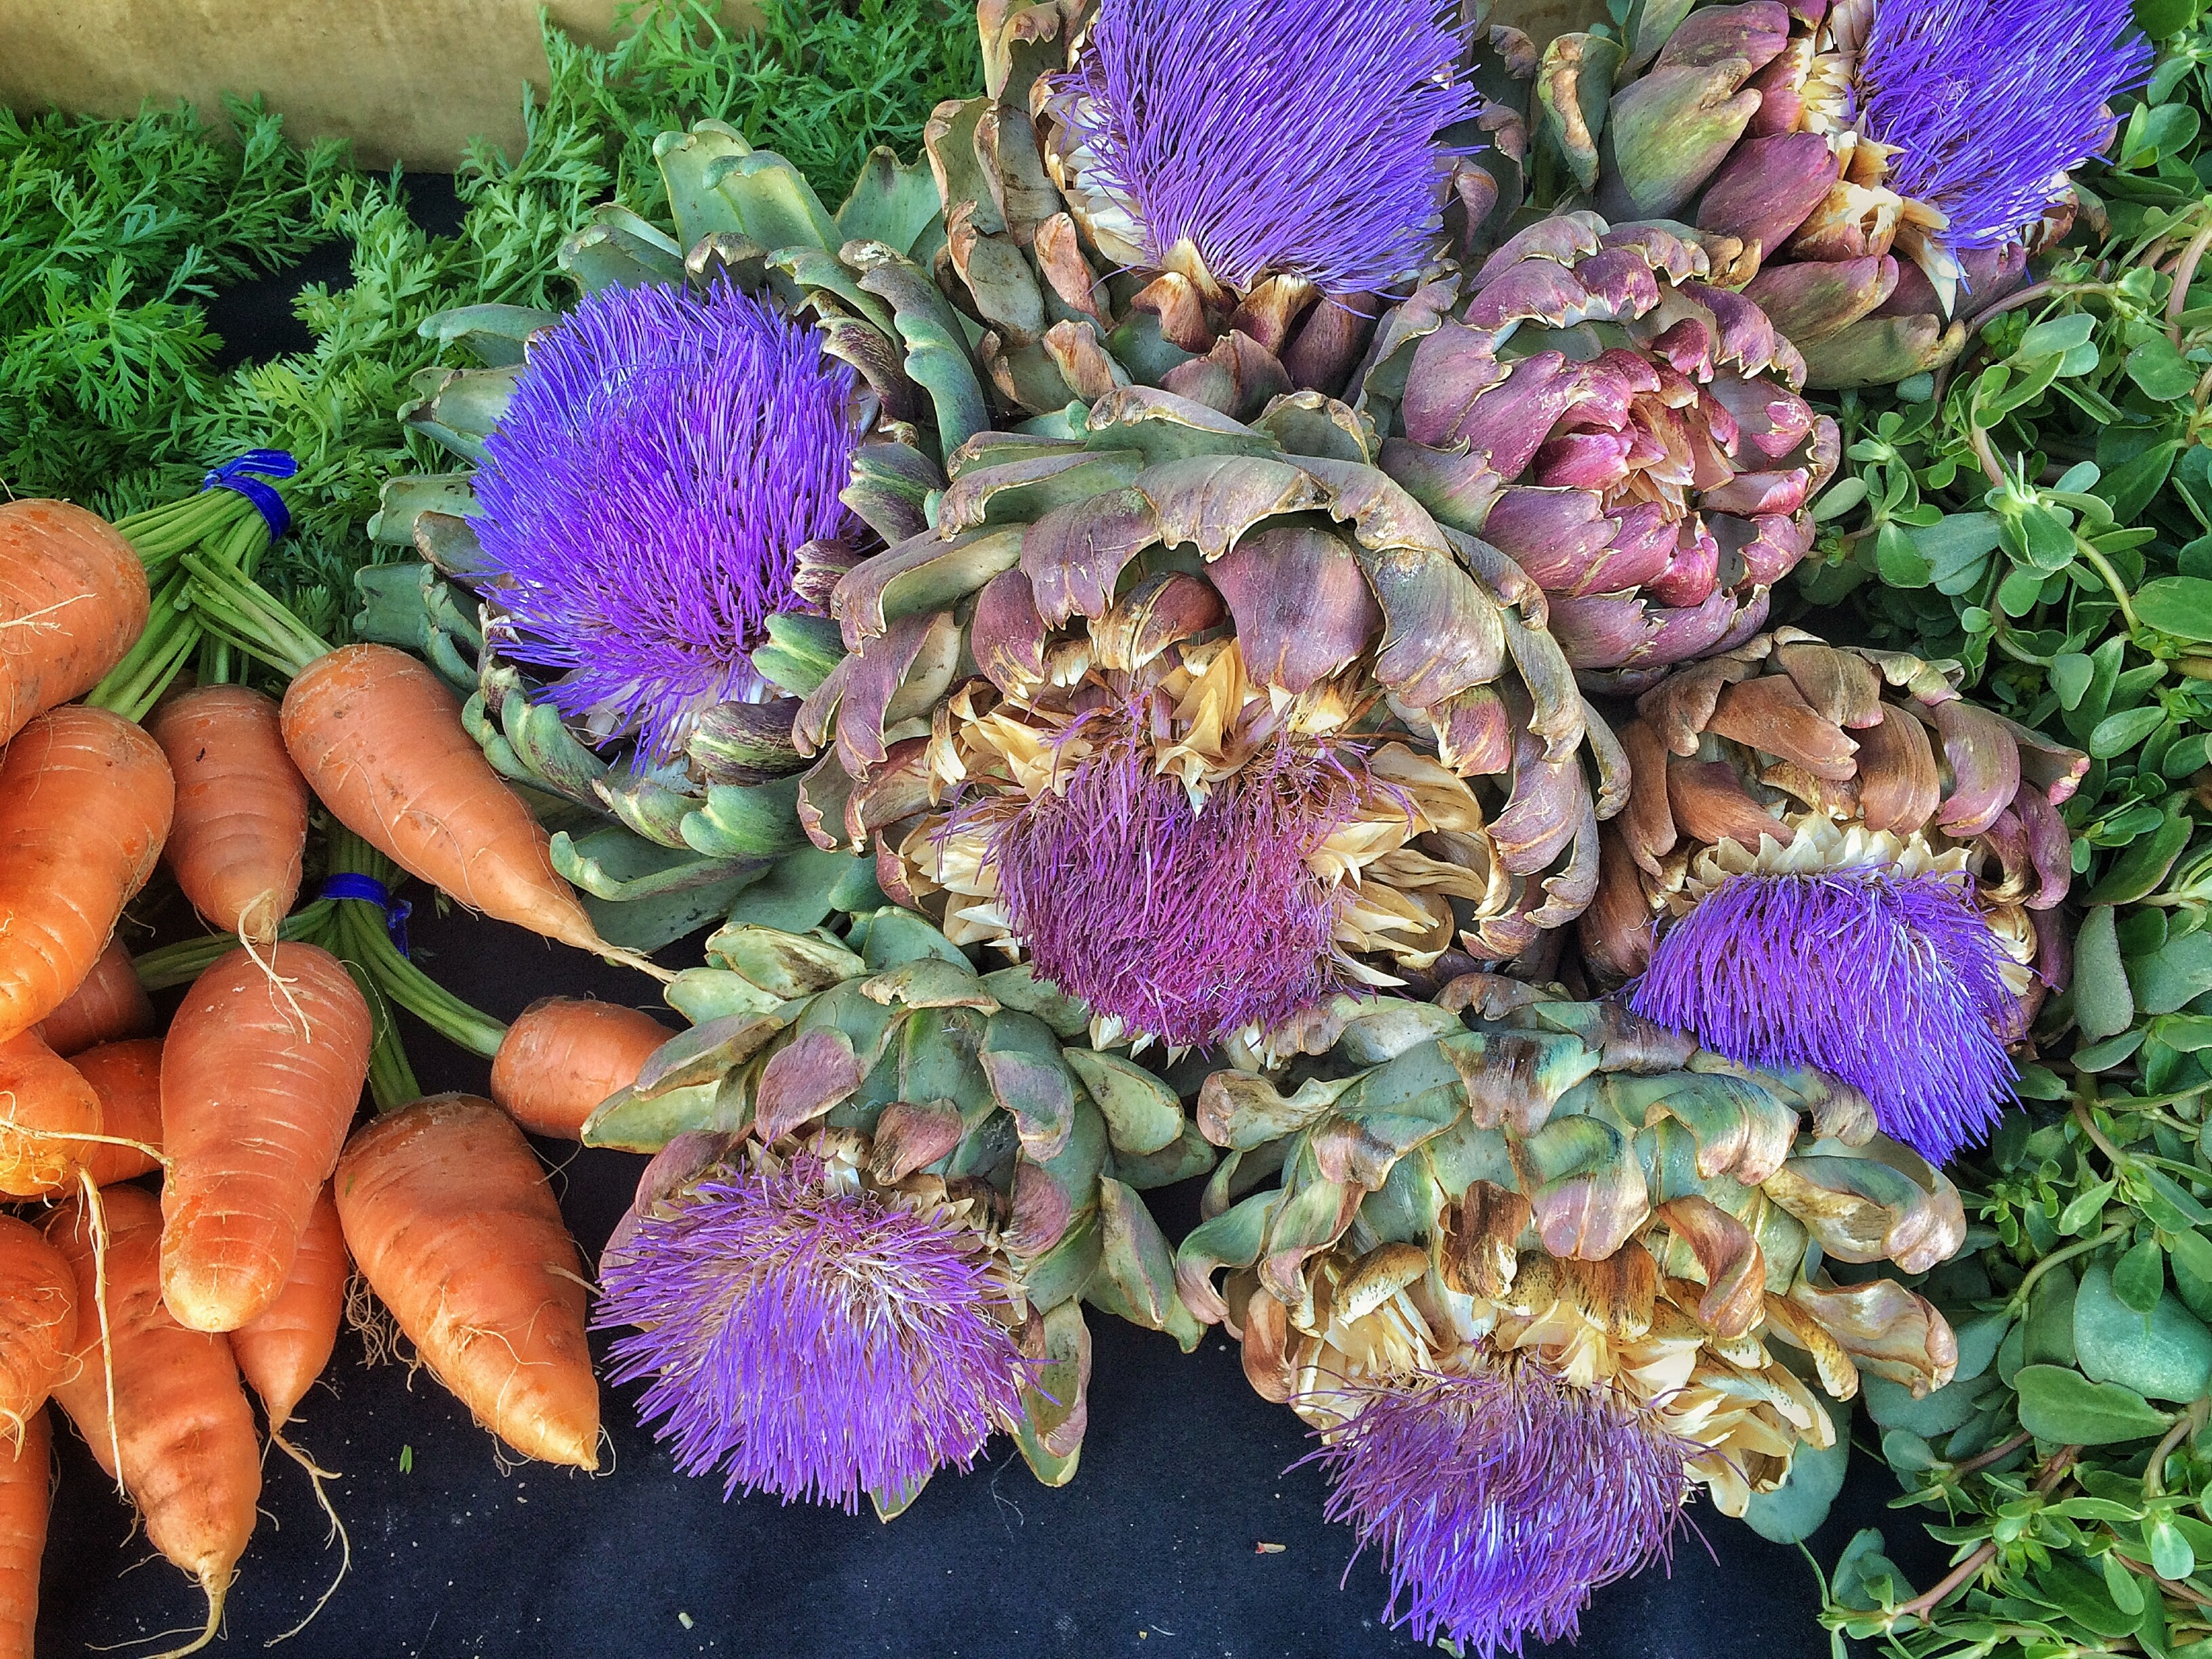 San Rafael's Thursday Farmers Market in June – snapshots of what's happening.